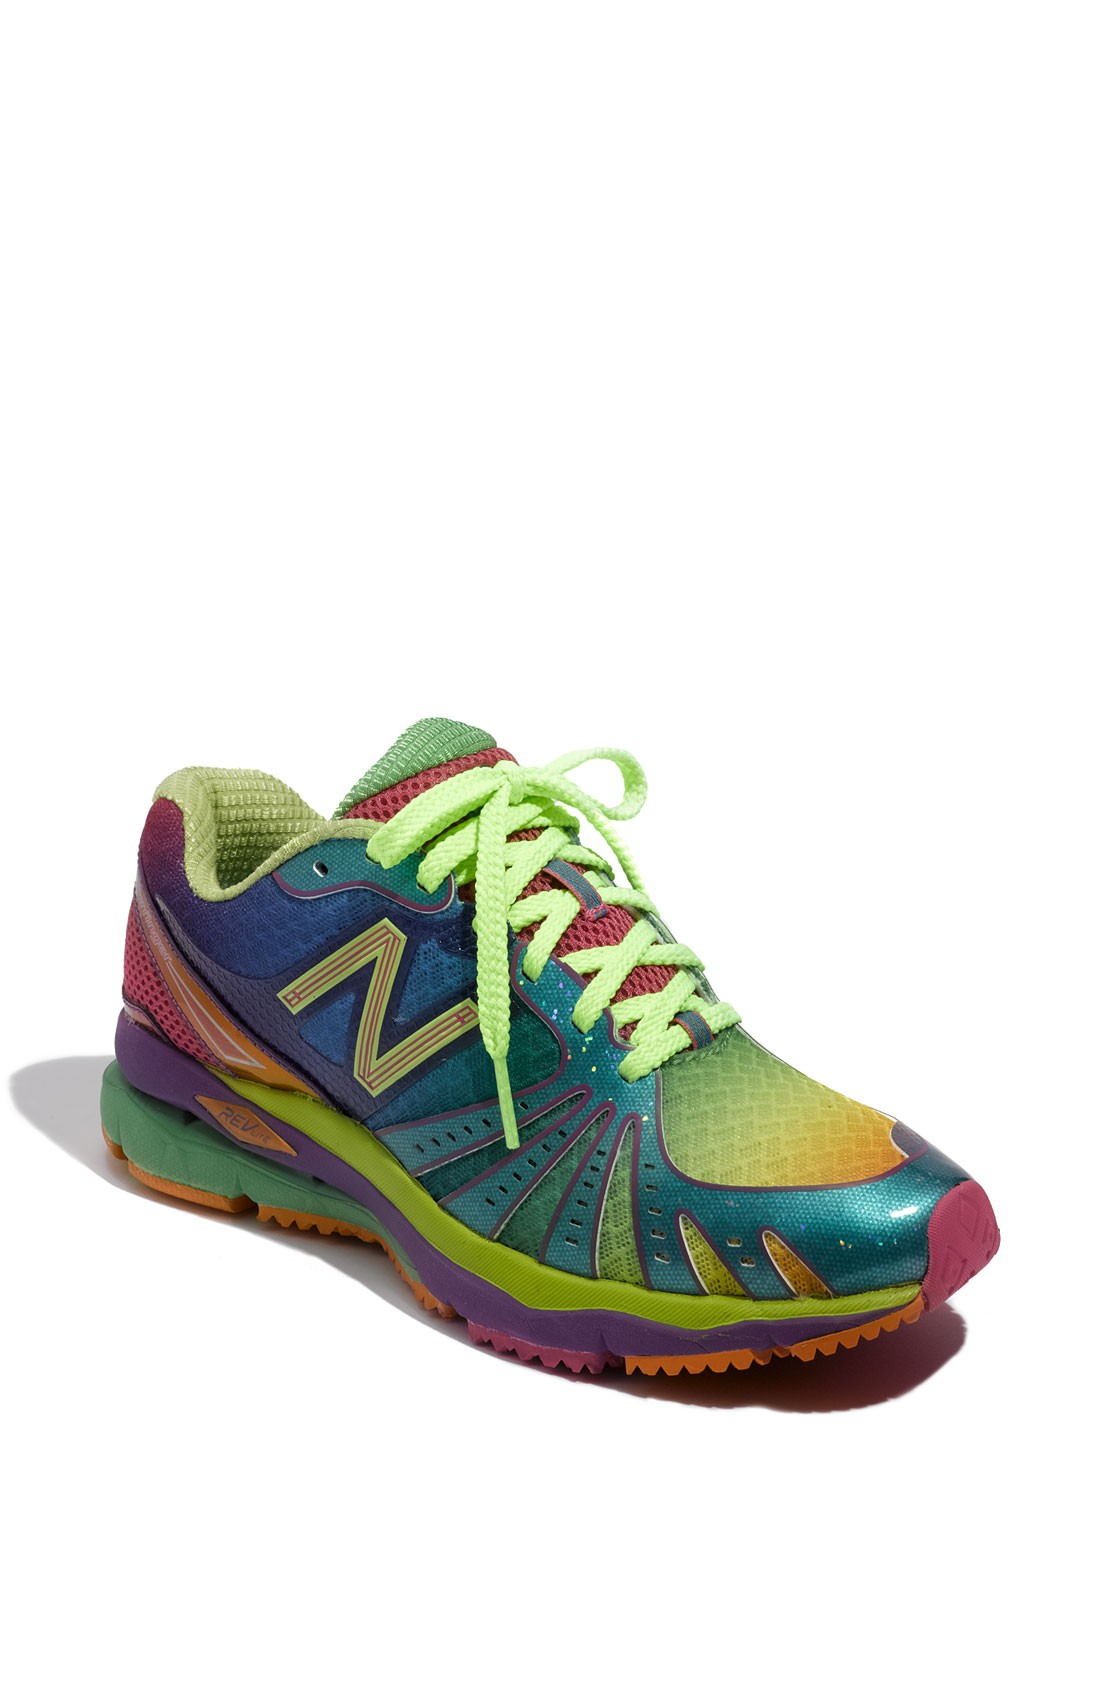 reputable site b2a34 c2837 Womens New Balance Multicolor 890 Rainbow Running shoes Blue Lime Green  Rose Purple